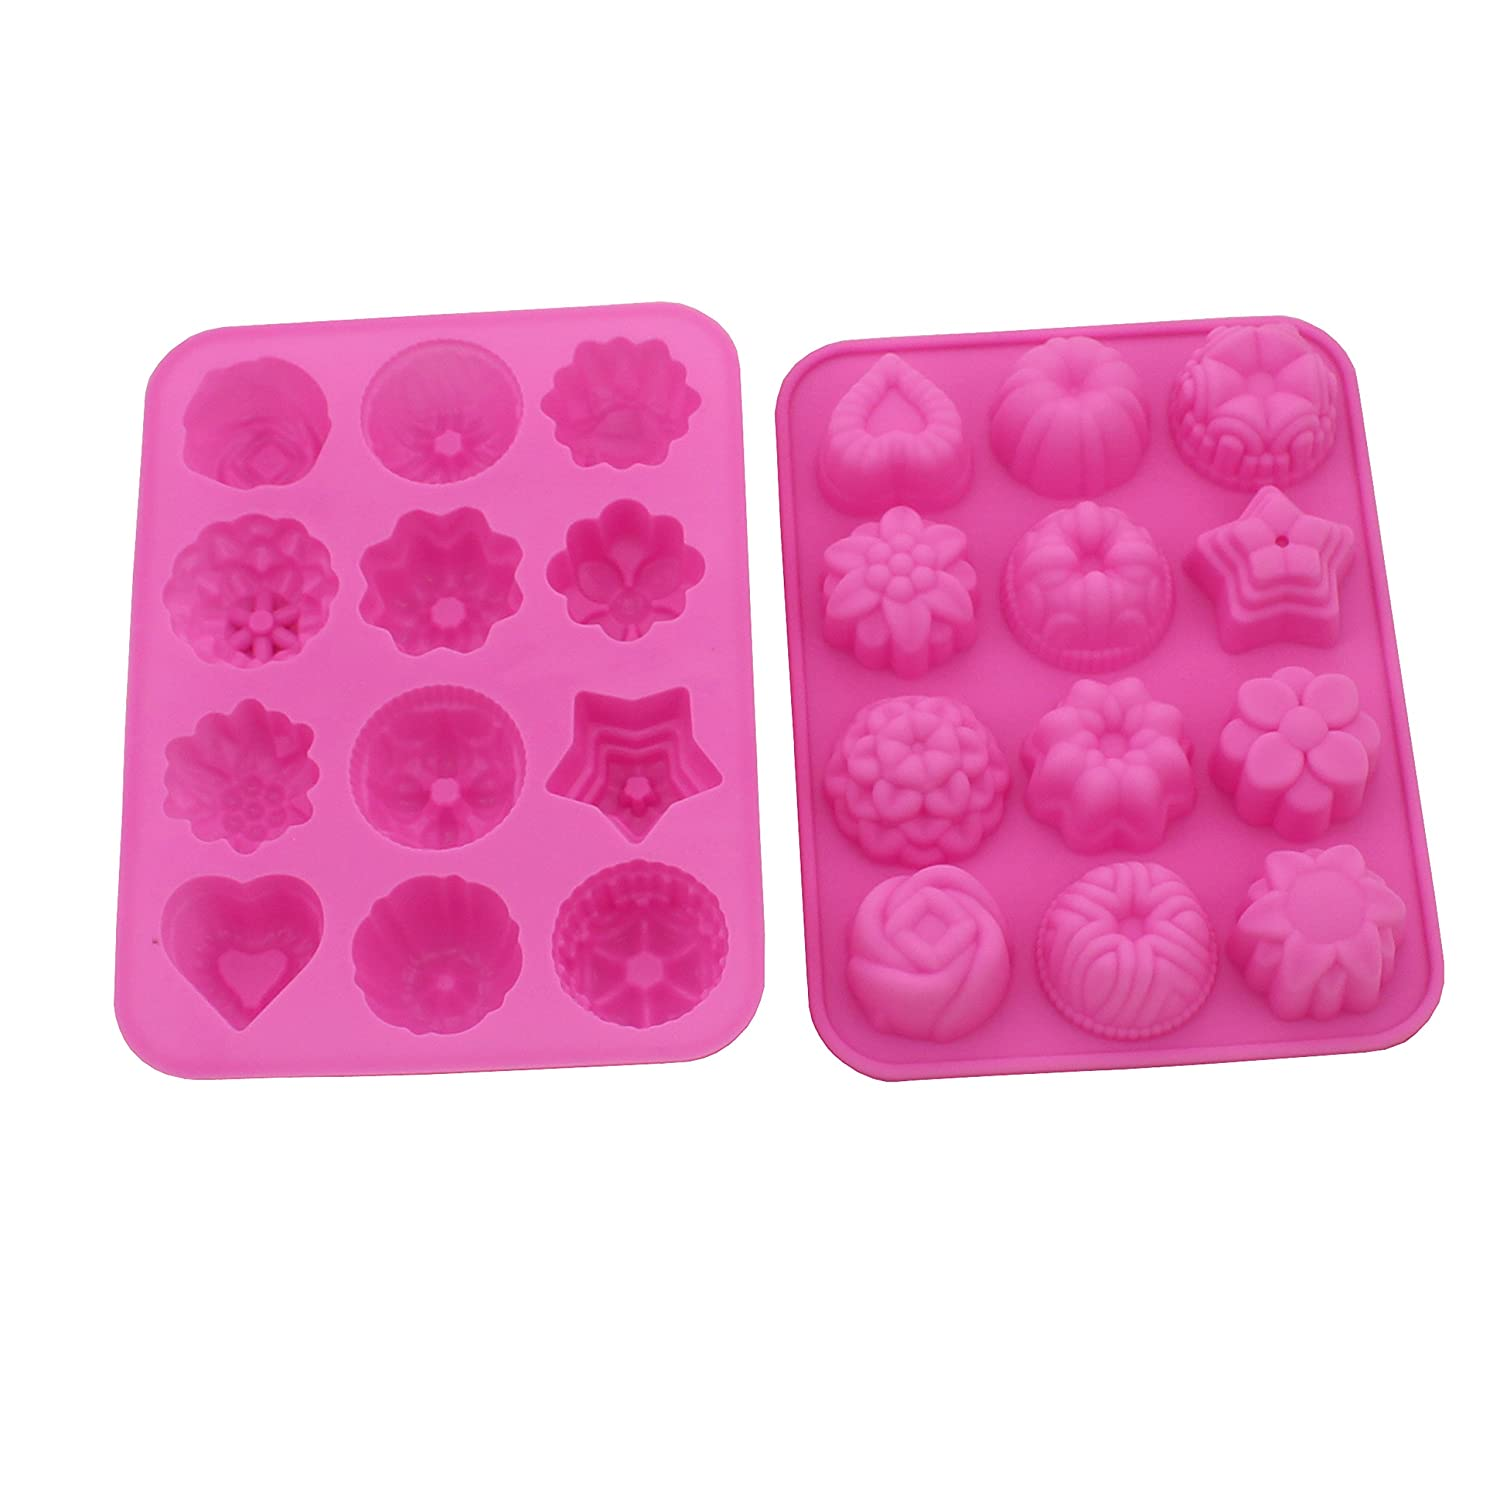 Warmbuy 2 Pack Flower Shaped Silicone Mold for Bath Bomb Soap Chocolate Candy Making